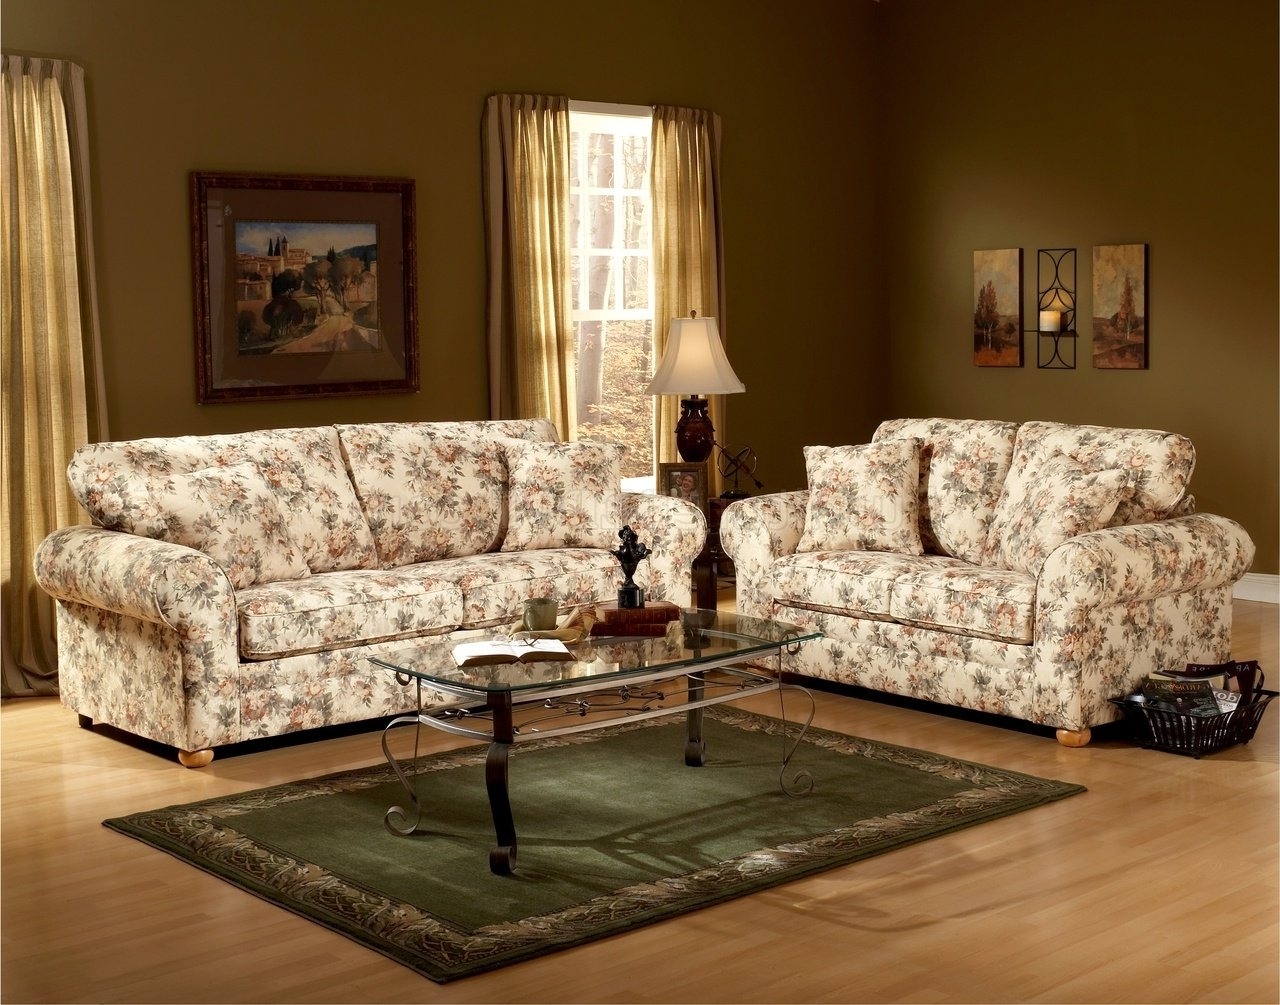 Floral Pattern Fabric Traditional Sofa & Loveseat Set Intended For Recent Traditional Sofas And Chairs (View 7 of 20)